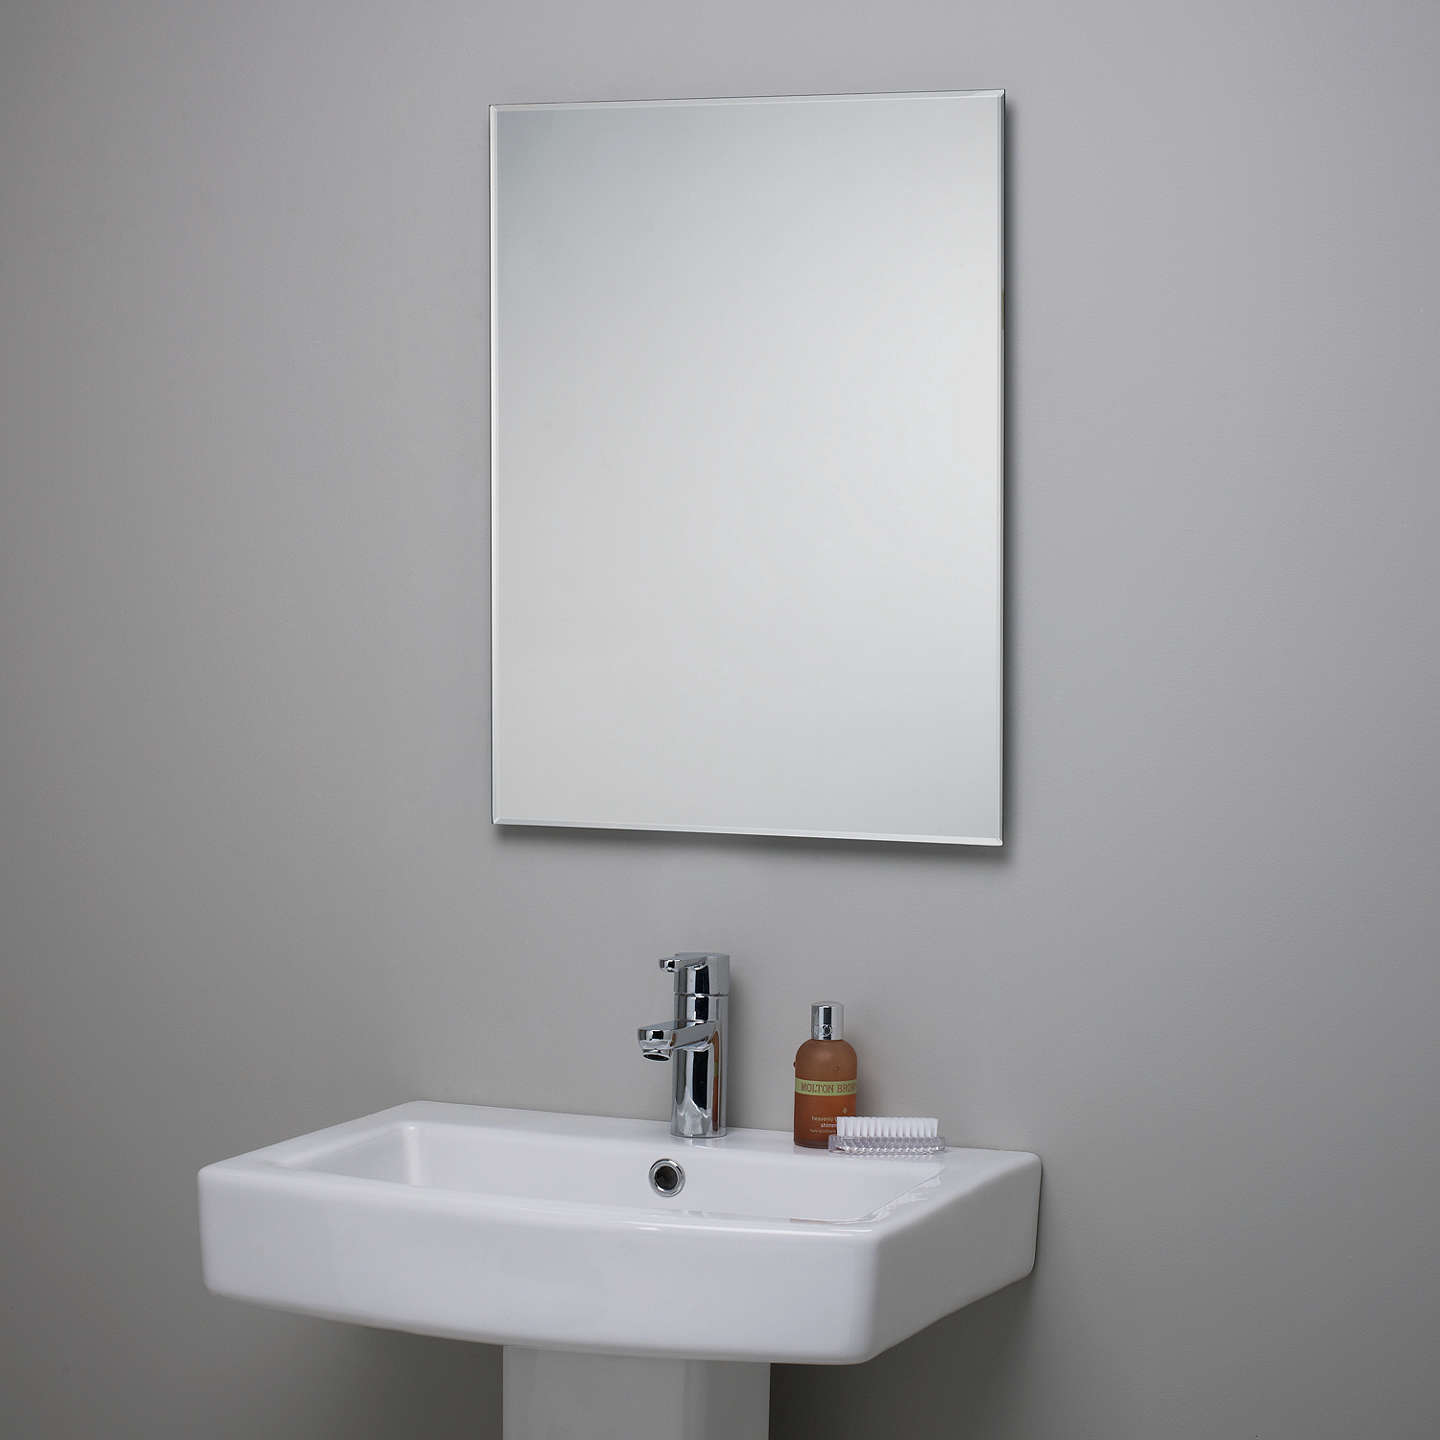 john lewis bevelled edge bathroom mirror at john lewis. Black Bedroom Furniture Sets. Home Design Ideas